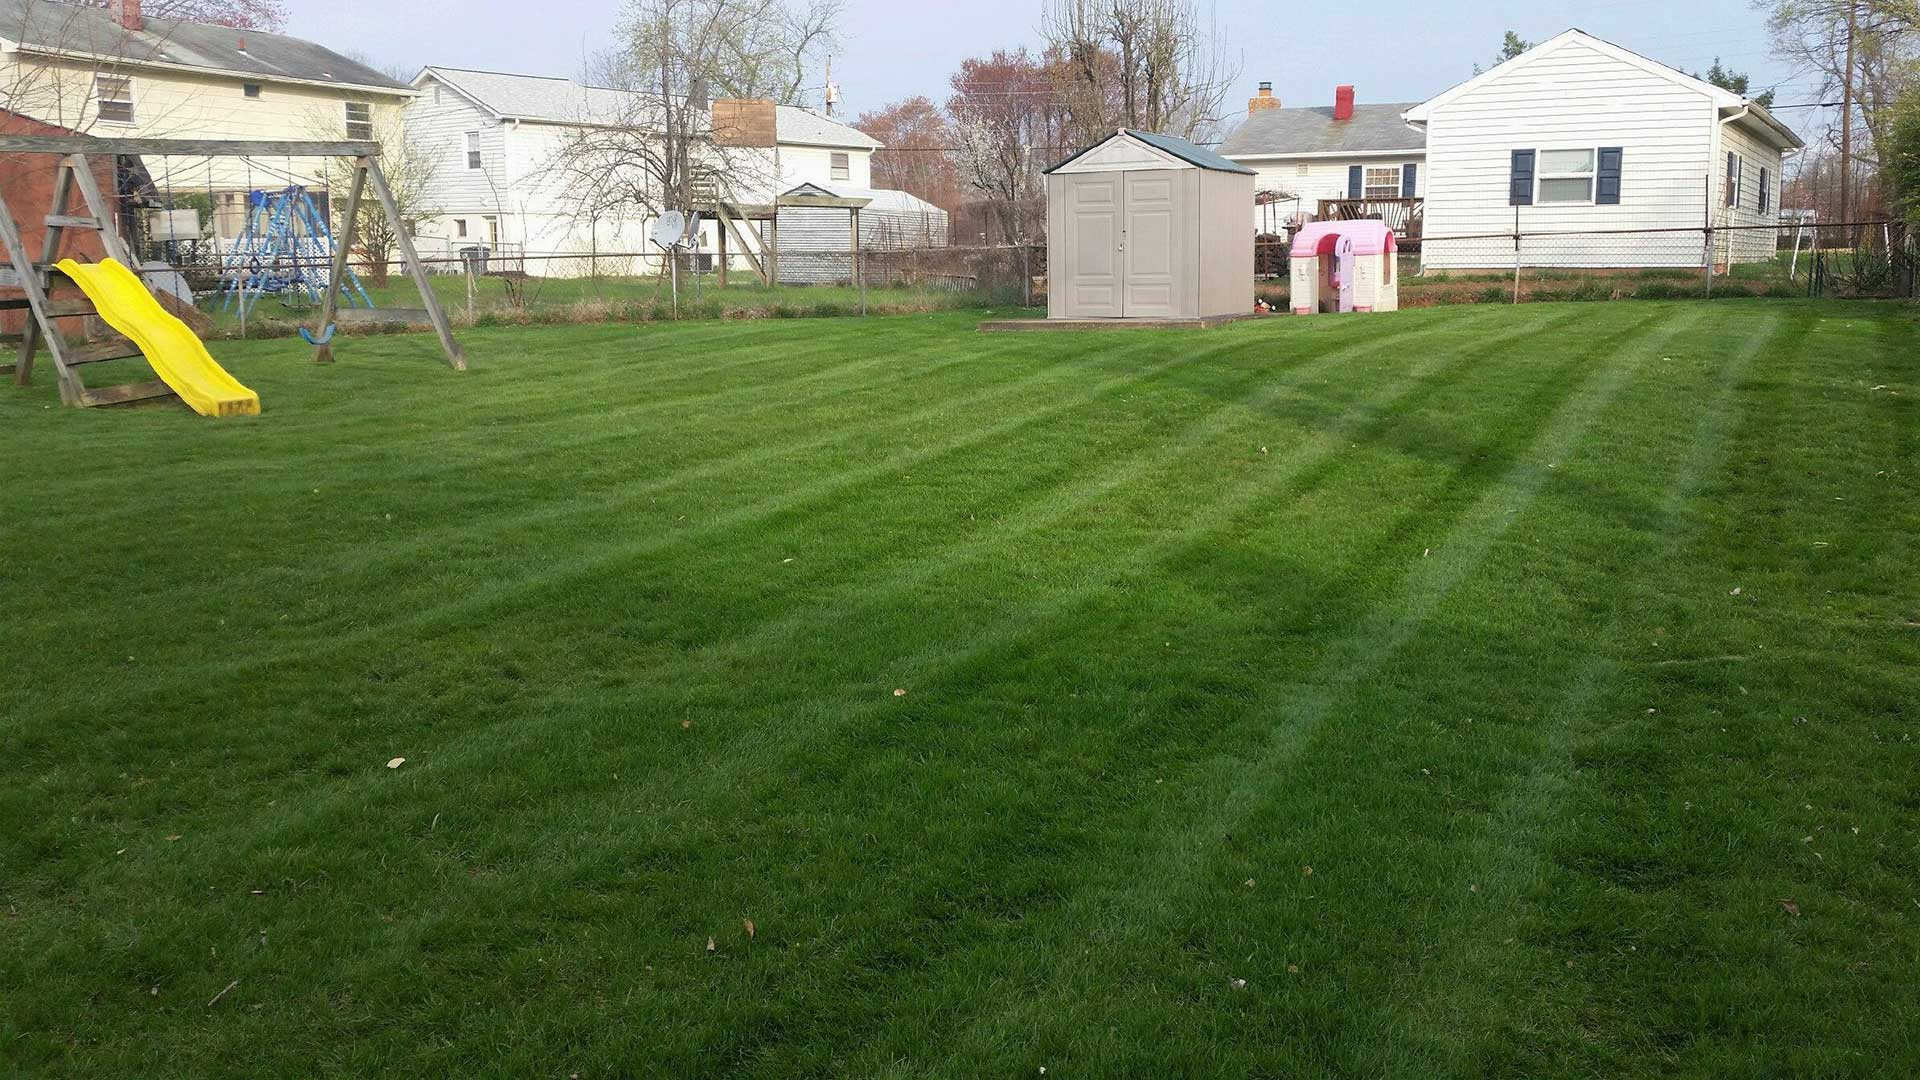 A backyard with mowing stripes in Bristow, VA.